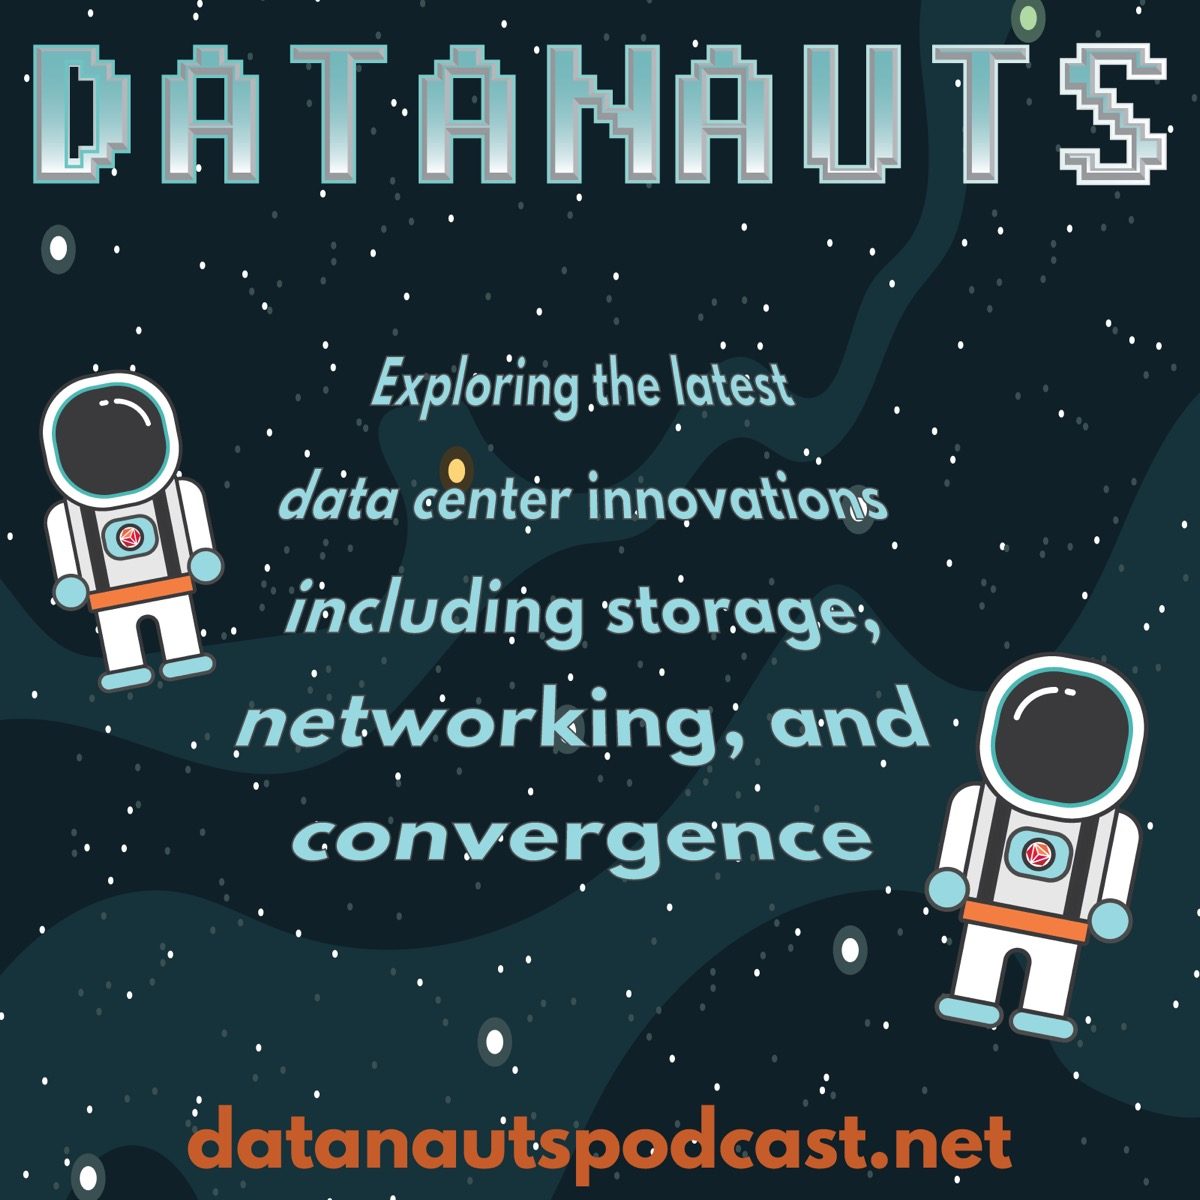 Datanauts 163: Hybrid Cloud DNS Design With AWS Route 53 - Packet